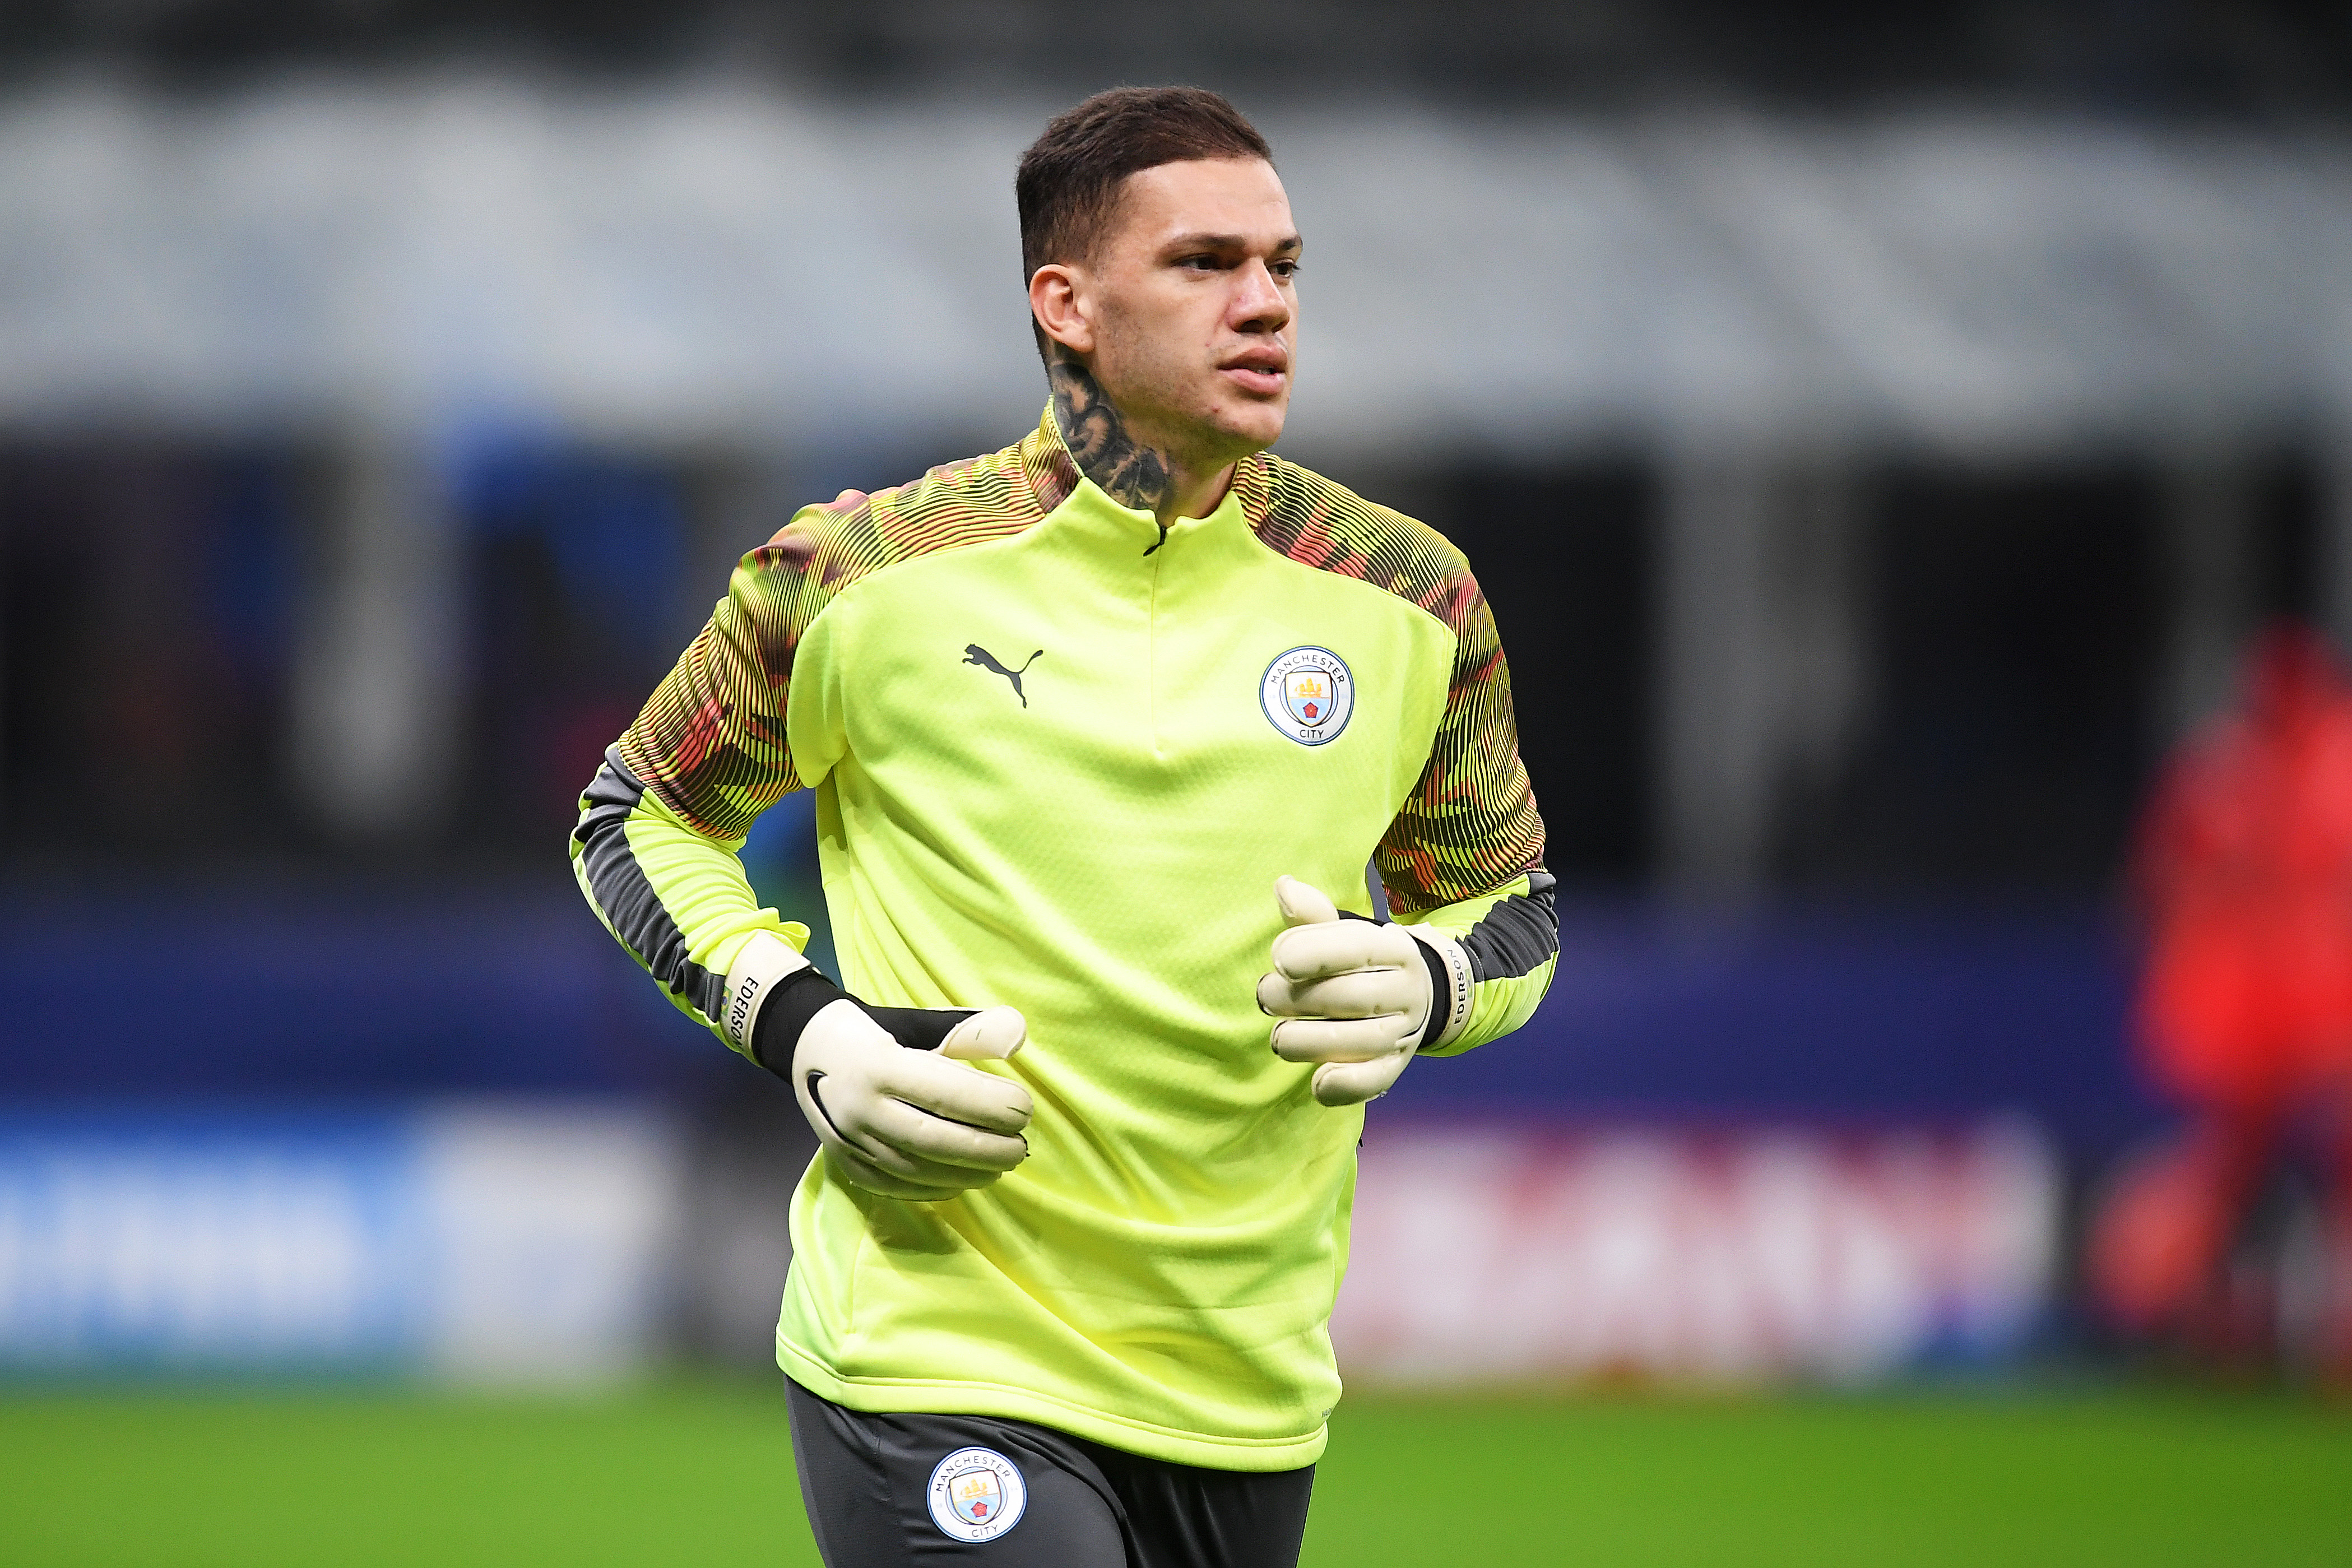 Ederson's absence will be a major blow for Manchester City (Photo by Michael Regan/Getty Images)